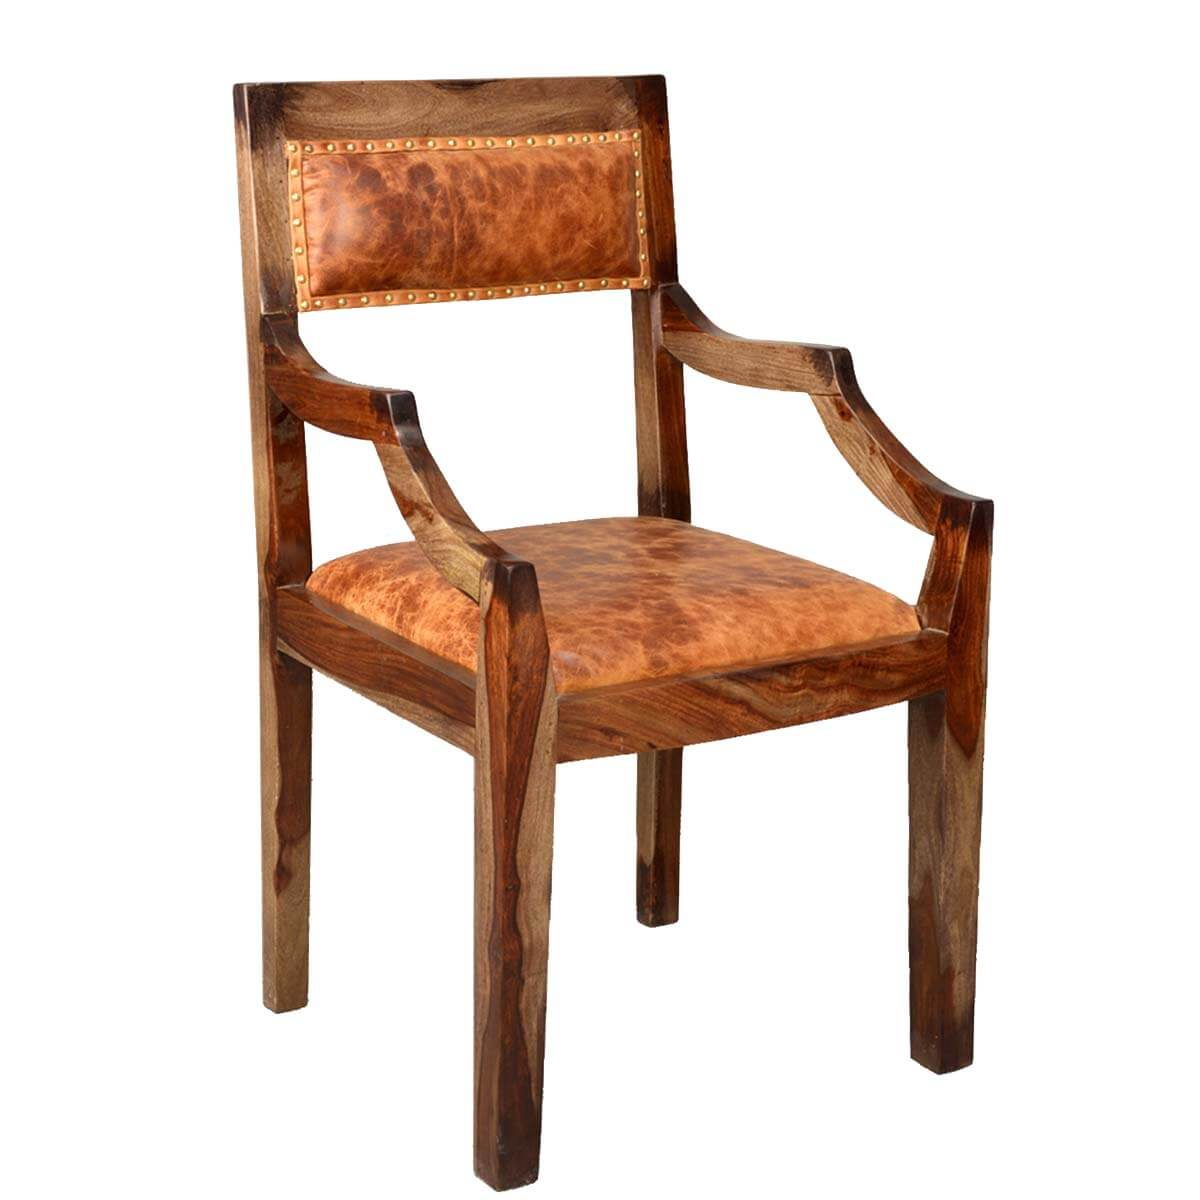 Upholstered Dining Chairs Imperial Solid Wood And Leather Upholstered Dining Chair